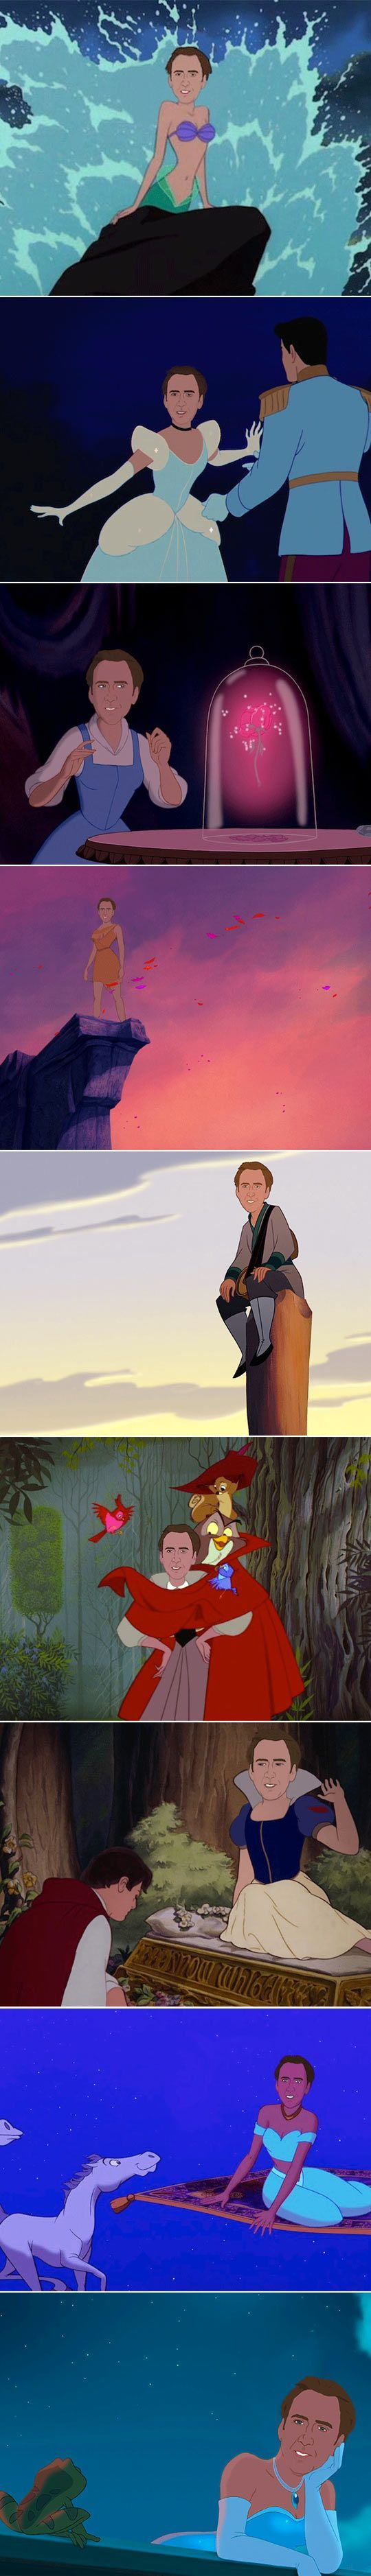 Princess Nicolas Cage鈥?I will never unsee this. XD lol   See more about disney princesses, disney movies and nicolas cage.